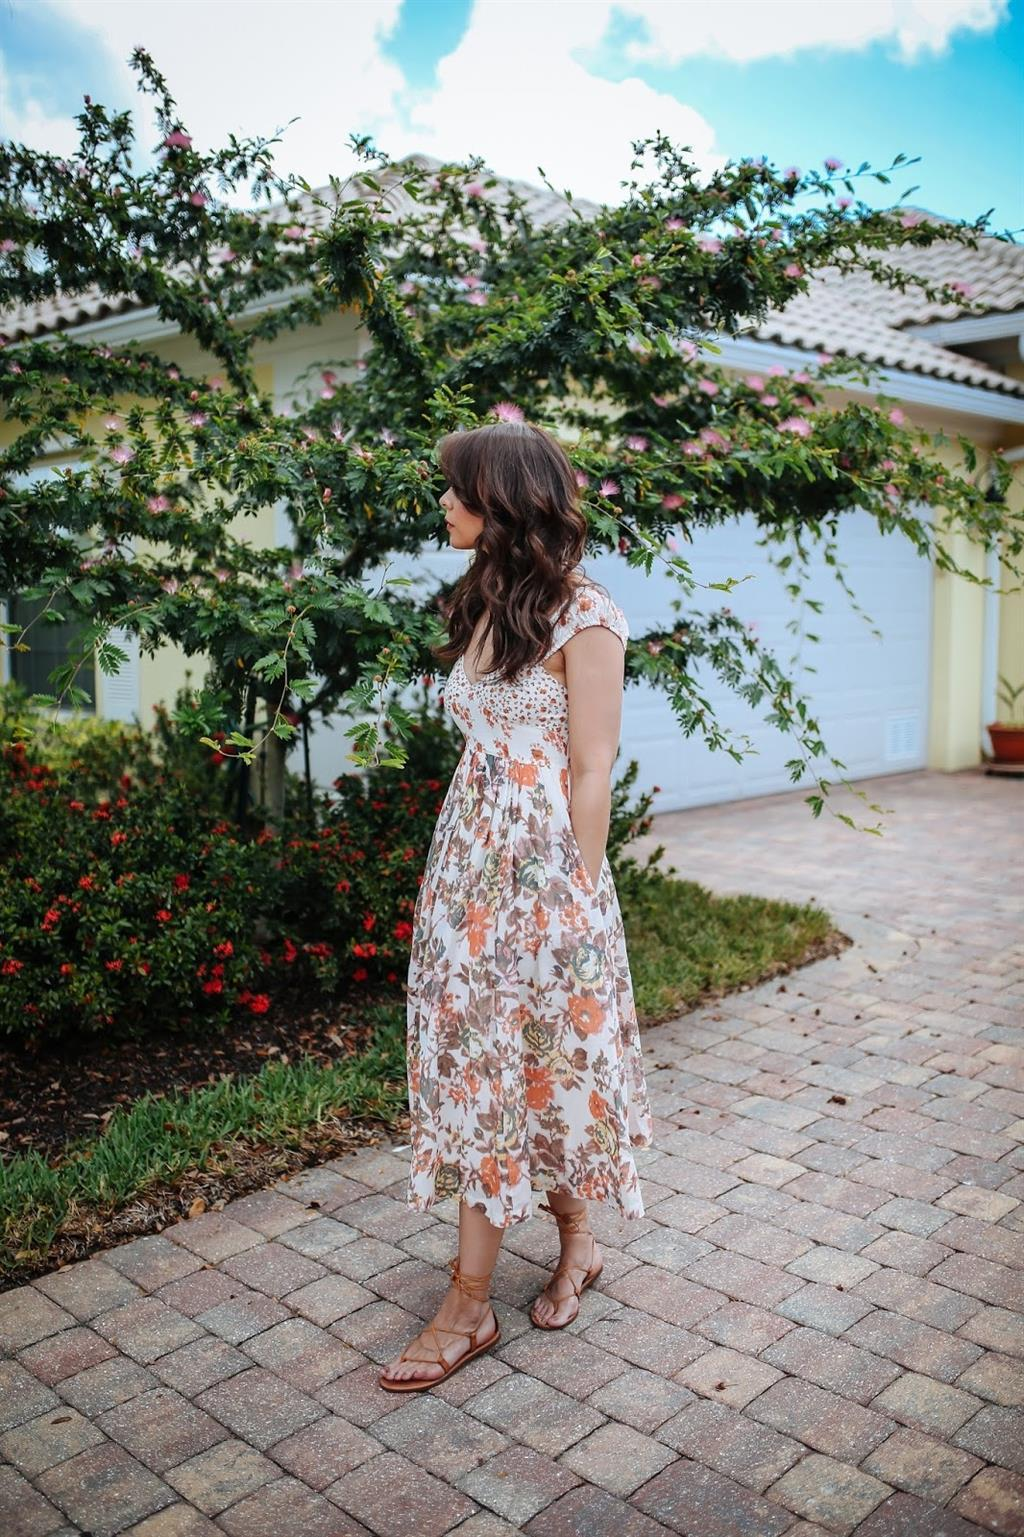 38297fa25cd2 fashion bananas talulah floral pleasure mini dress jules smith factor hoop  earrings shopbop madewell outstock lace up sandals l30957 2018-05-03T22 49   ...